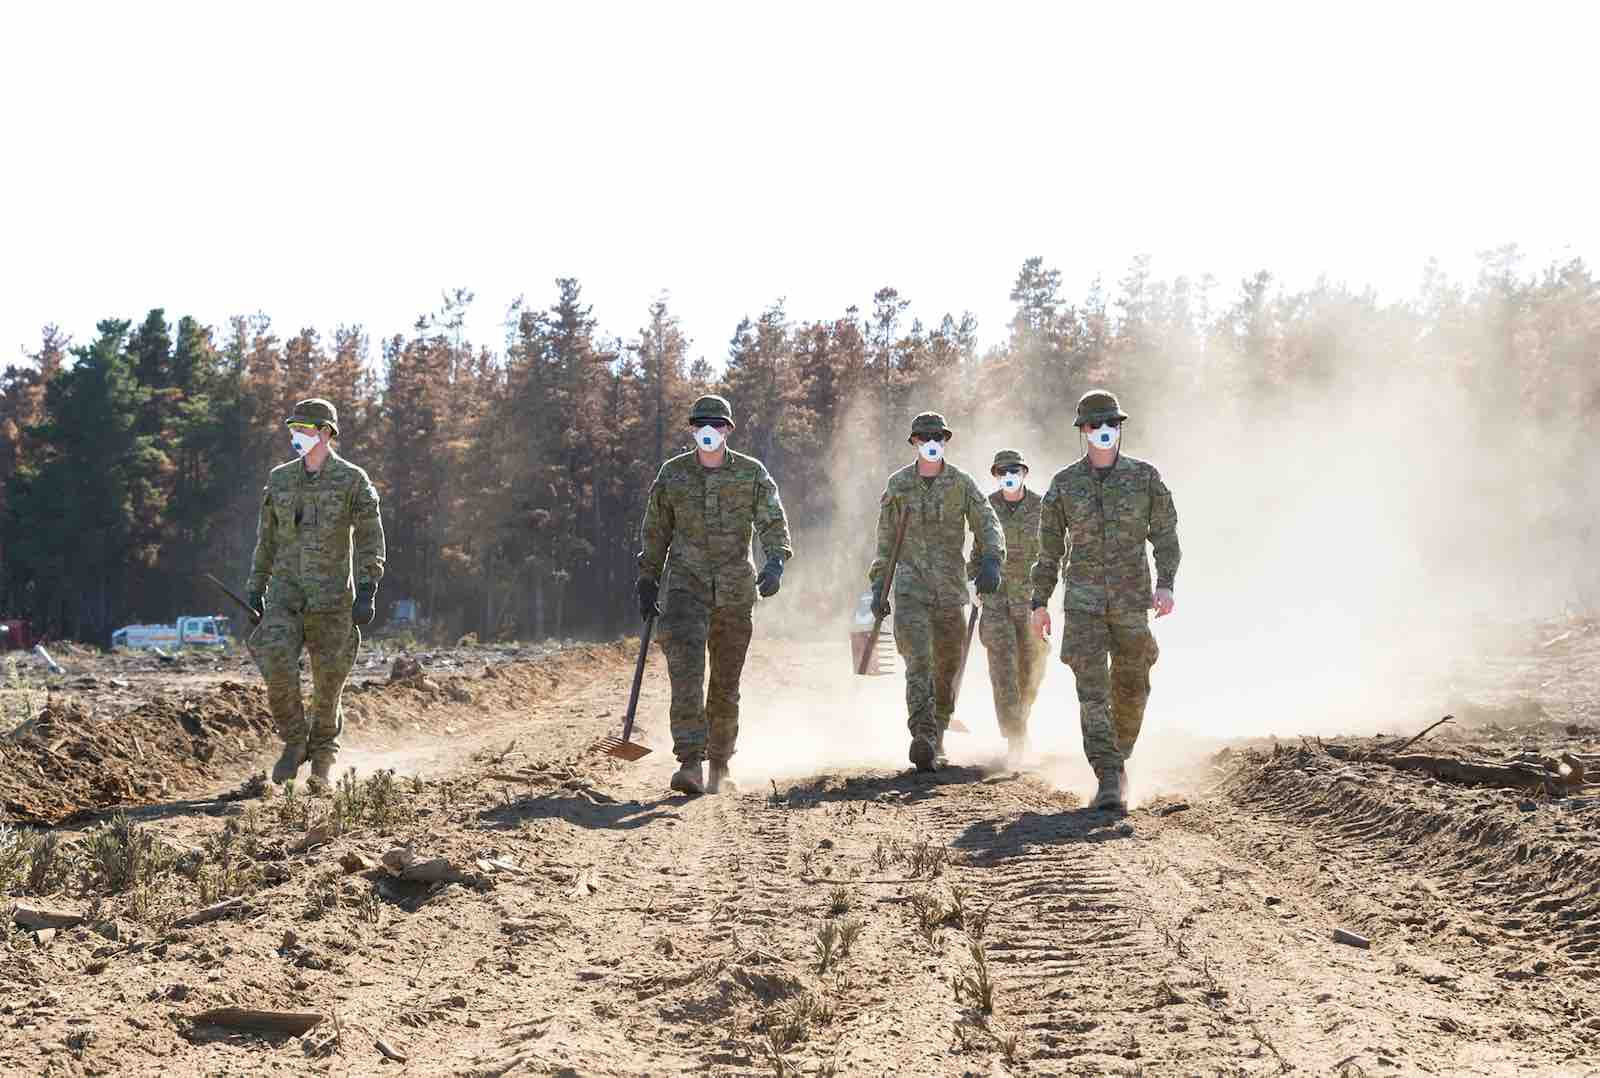 Soldiers from the Royal Australian Artillery assist in preventing the reignition of bushfires on Kangaroo Island in January, as part of Operation Bushfire Assist 2019-2020 (Photo: Australian Defence Force)